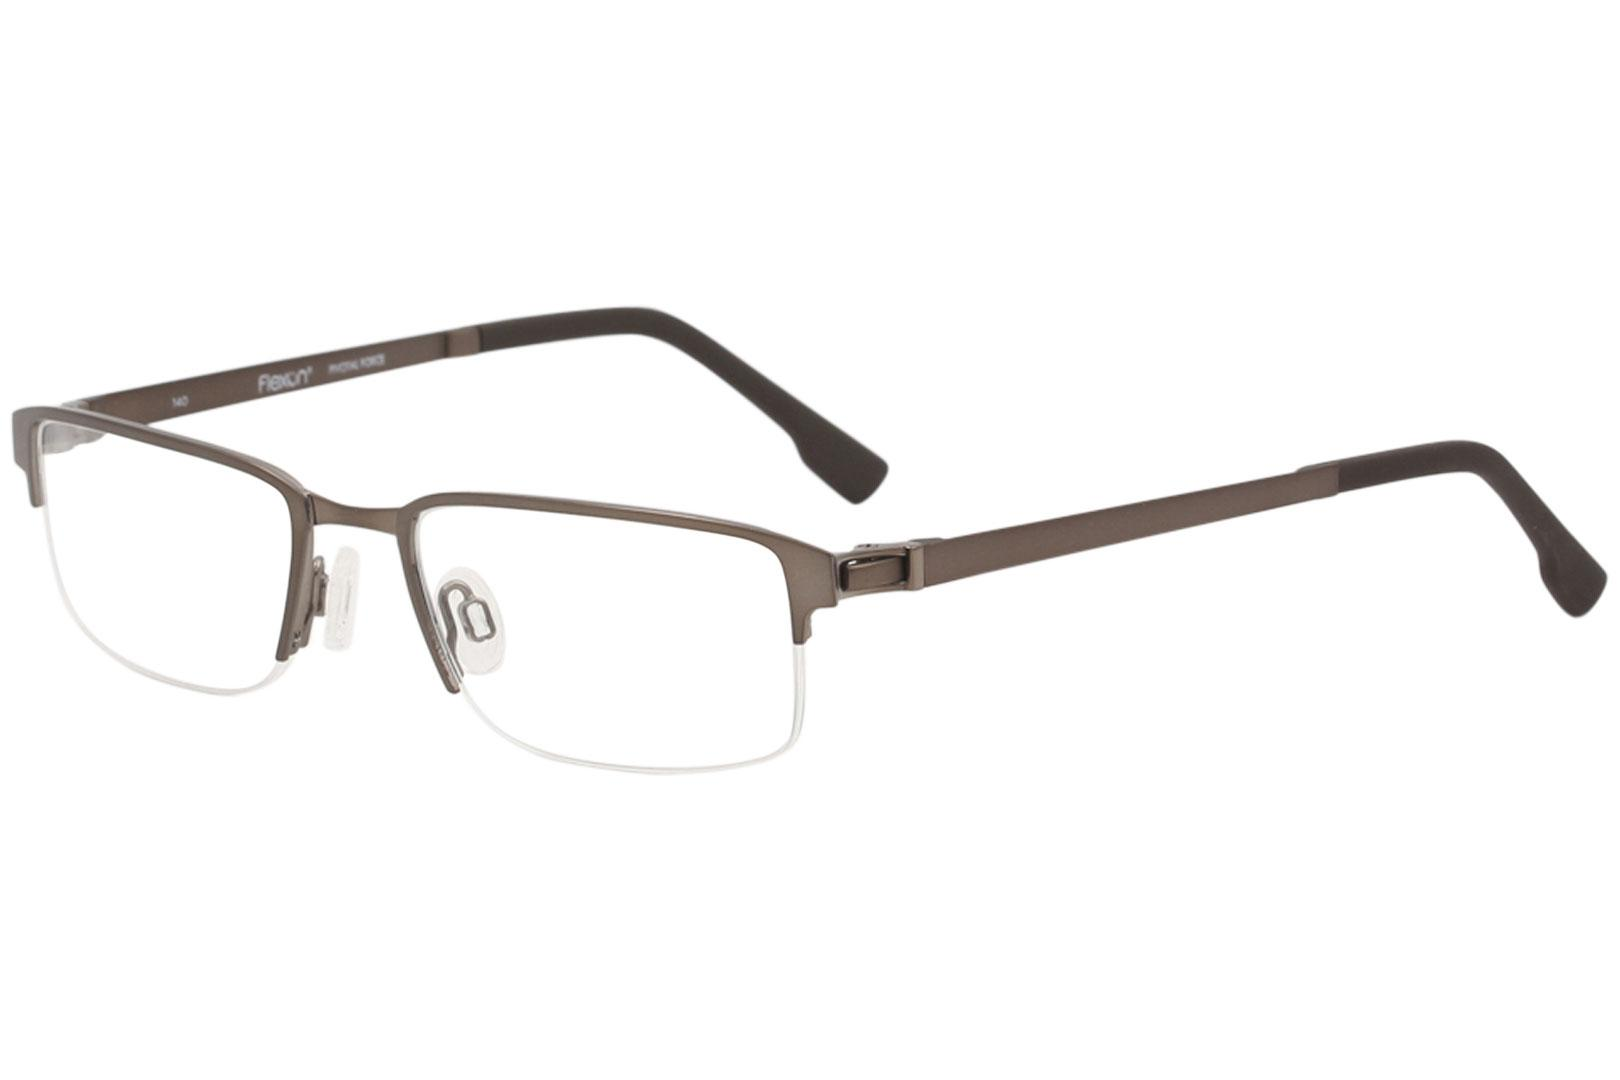 Image of Flexon Eyeglasses E1052 E/1052 210 Brushed Brown Half Rim Optical Frame 53mm - Brushed Brown   210 - Lens 53 Bridge 19 Temple 140mm